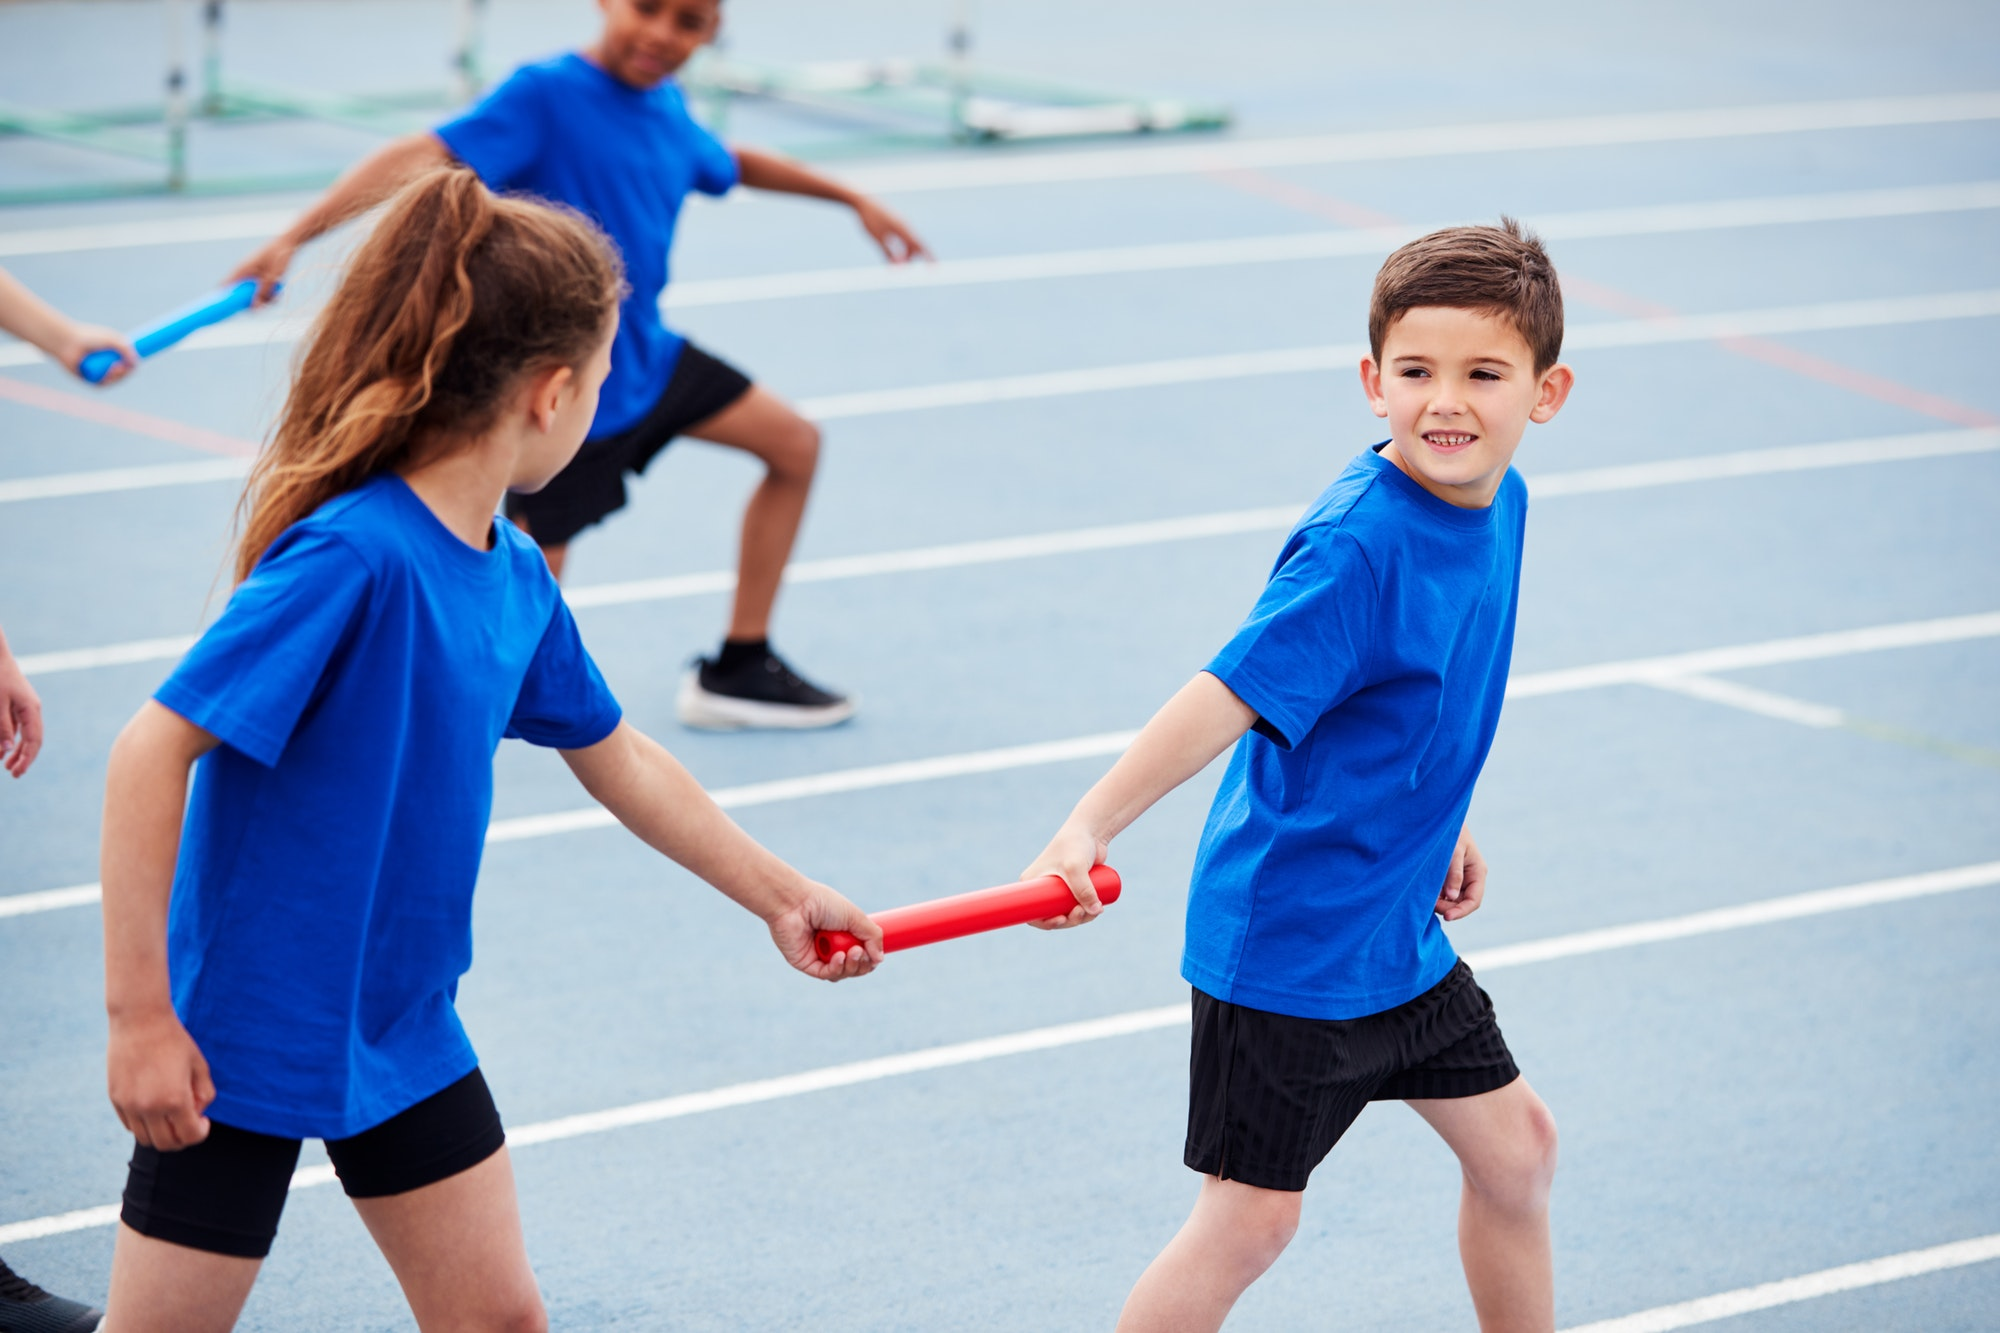 Children In Athletics Team Competing In Relay Race On Sports Day